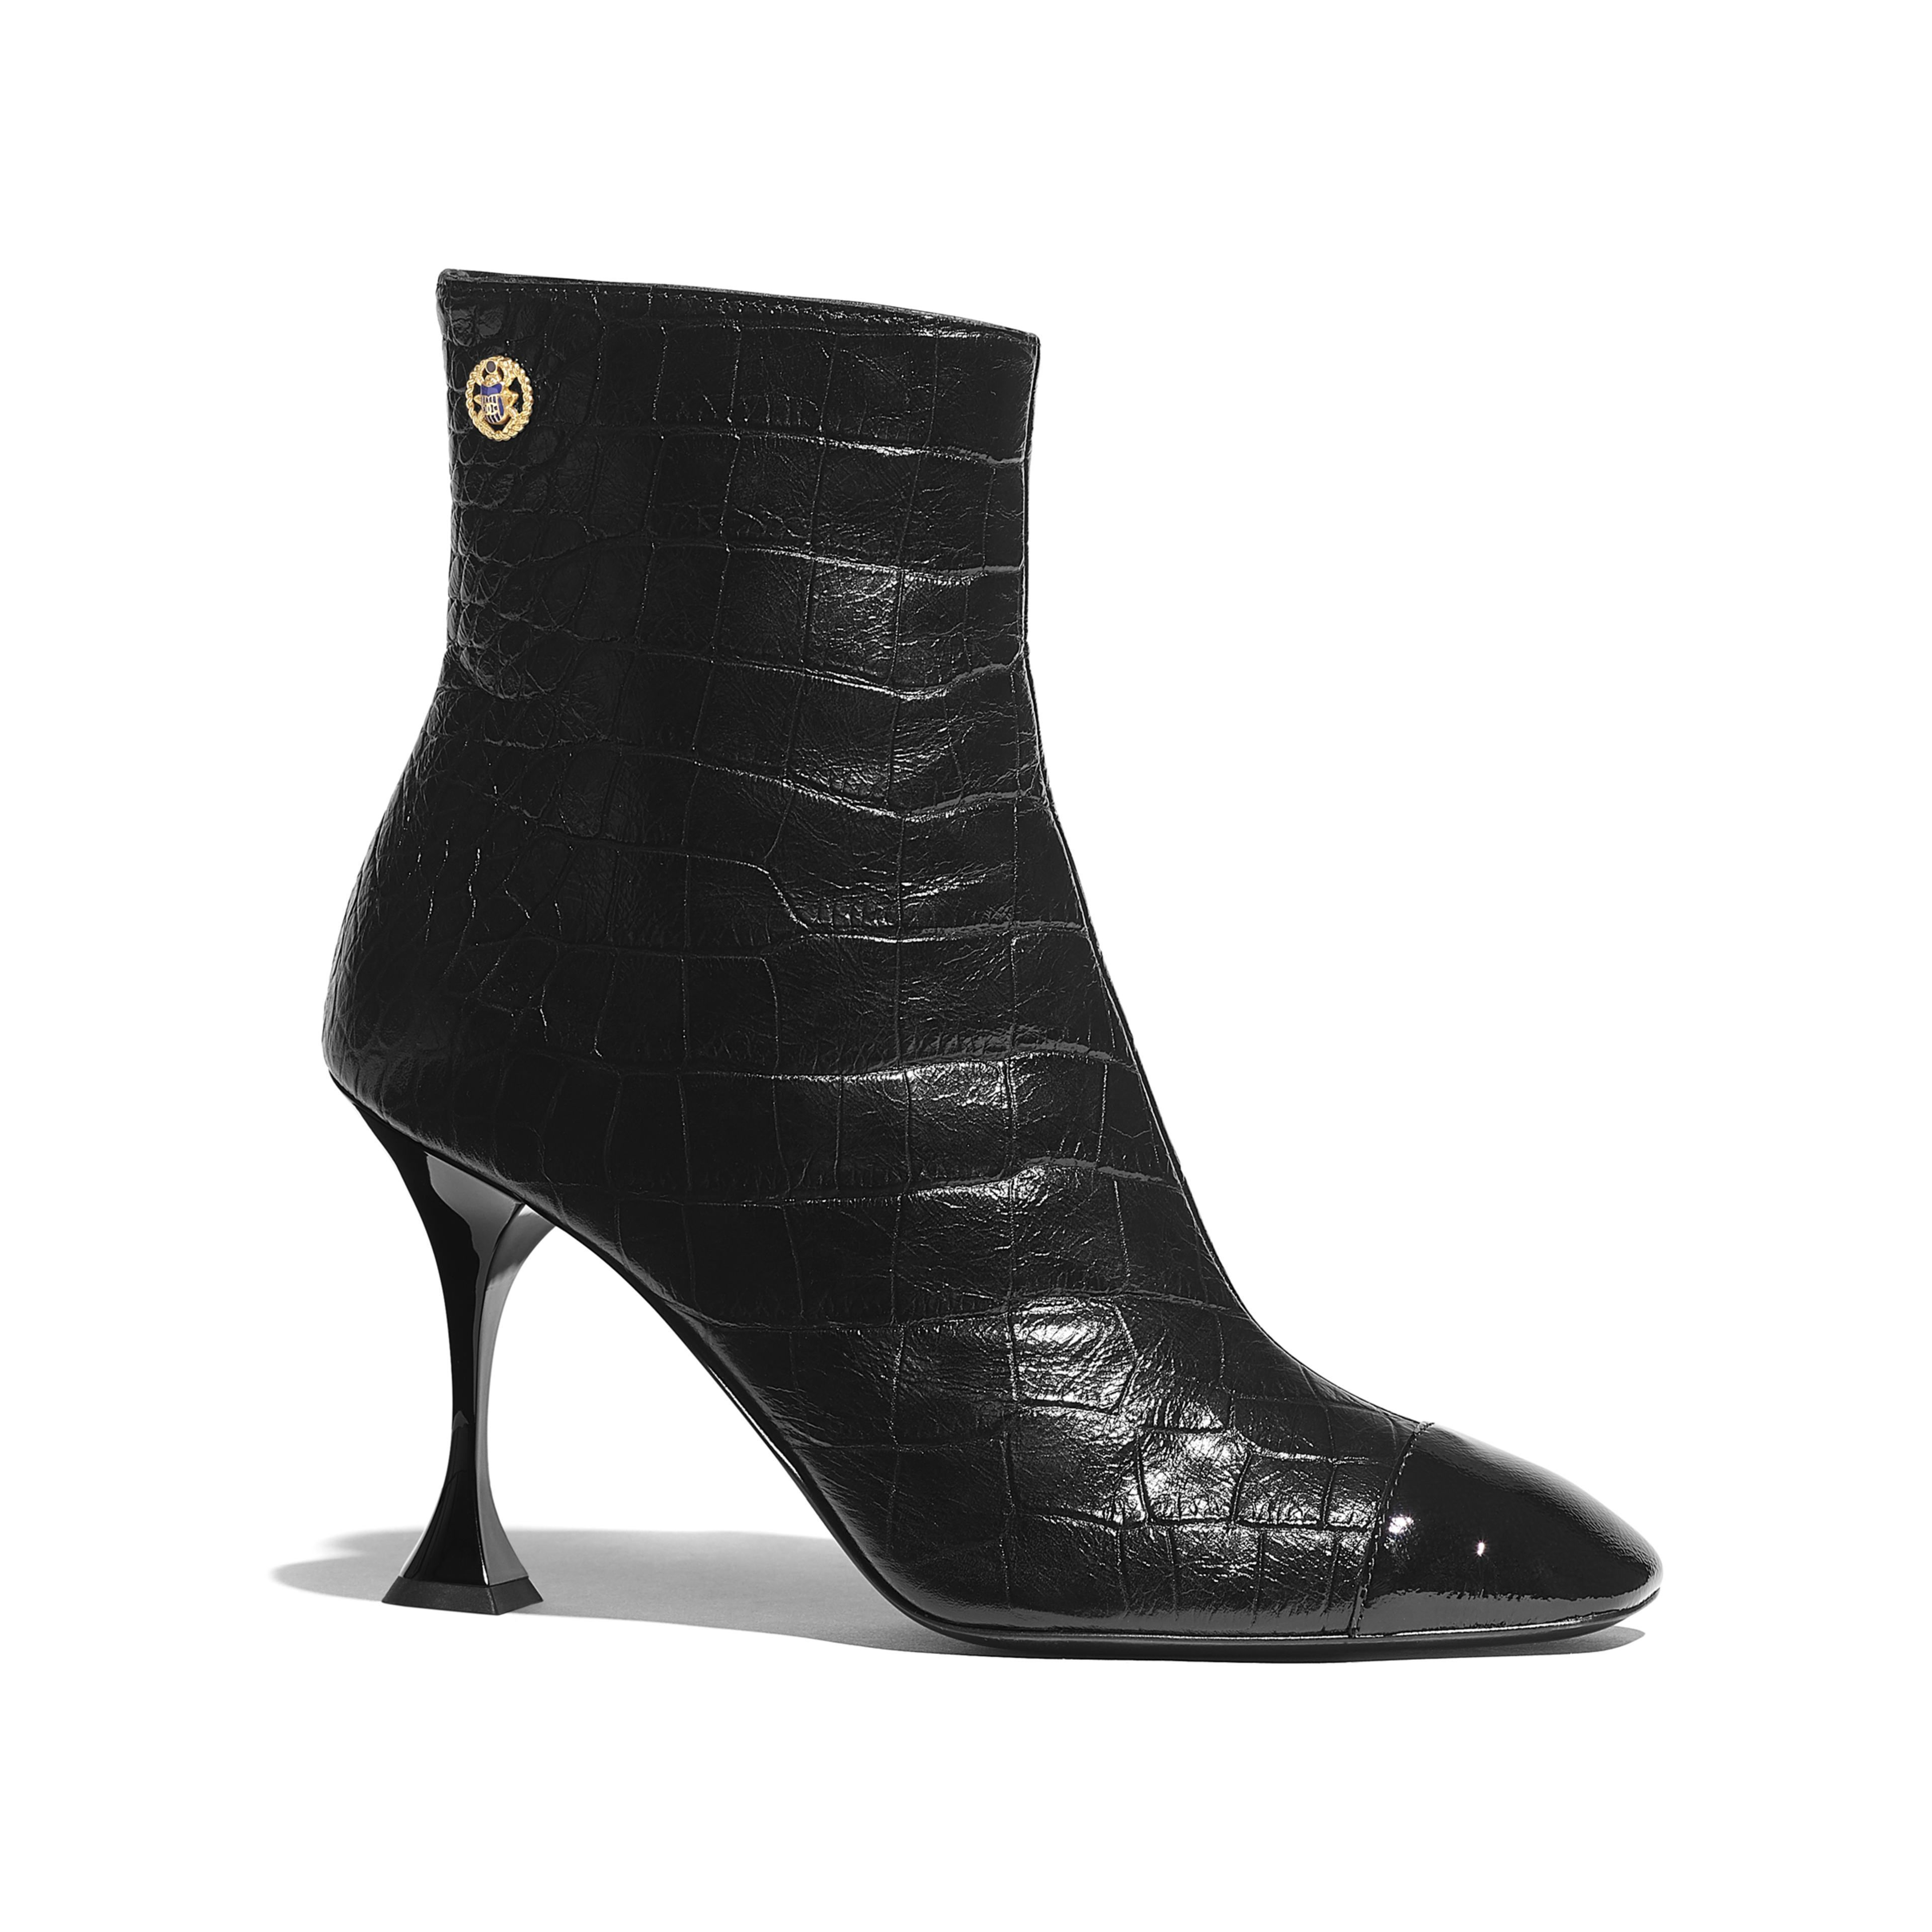 1768f68cdf50 23 Best Fall Boots for Women - Cute Fall Boots for Every Budget